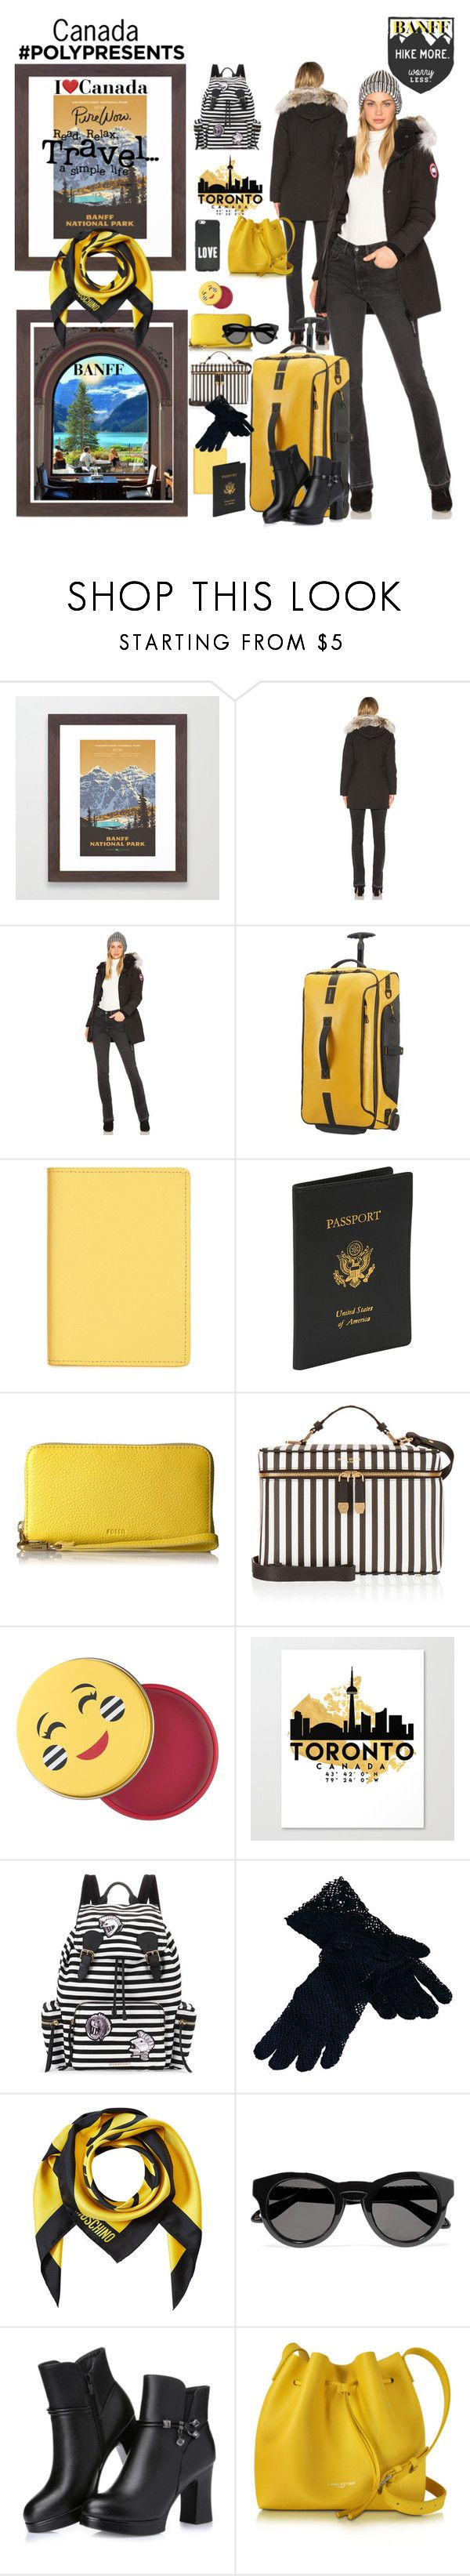 """""""#PolyPresents: Dream Vacation     Canada"""" by beleev ❤ liked on Polyvore featuring Canada Goose, Samsonite, Nordstrom, Royce Leather, FOSSIL, Henri Bendel, Sephora Collection, Burberry, Saro and Moschino"""